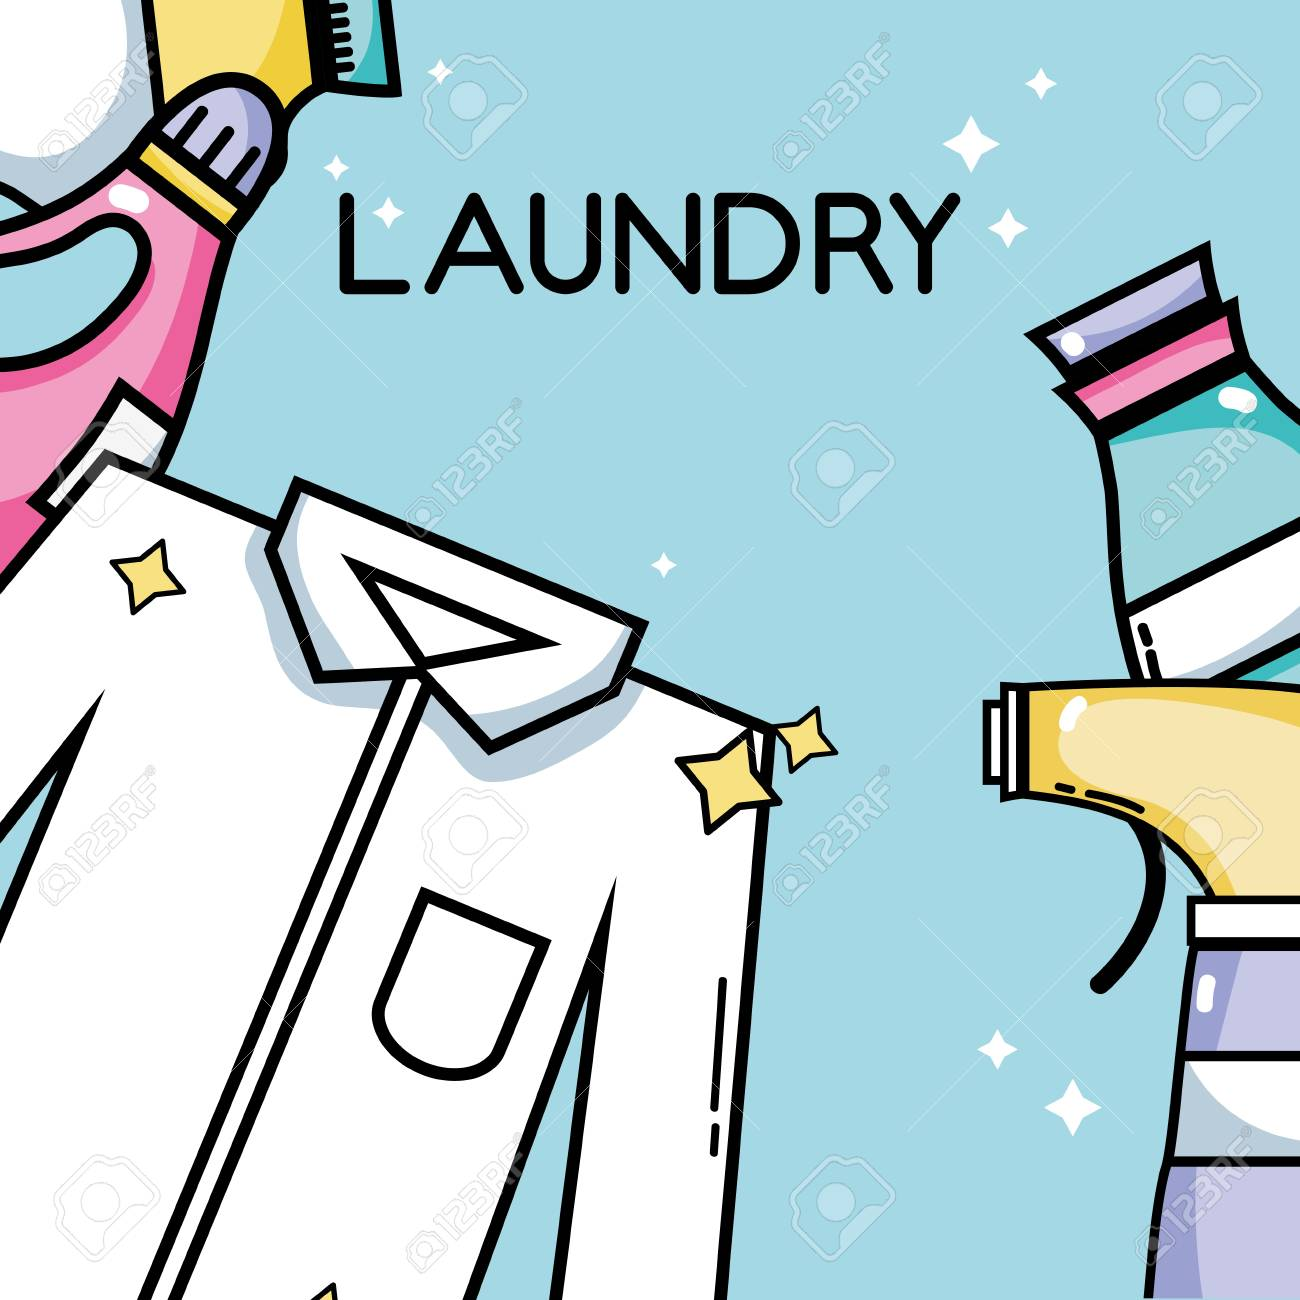 laundry equipment to clean the clothes and housework - 84892434